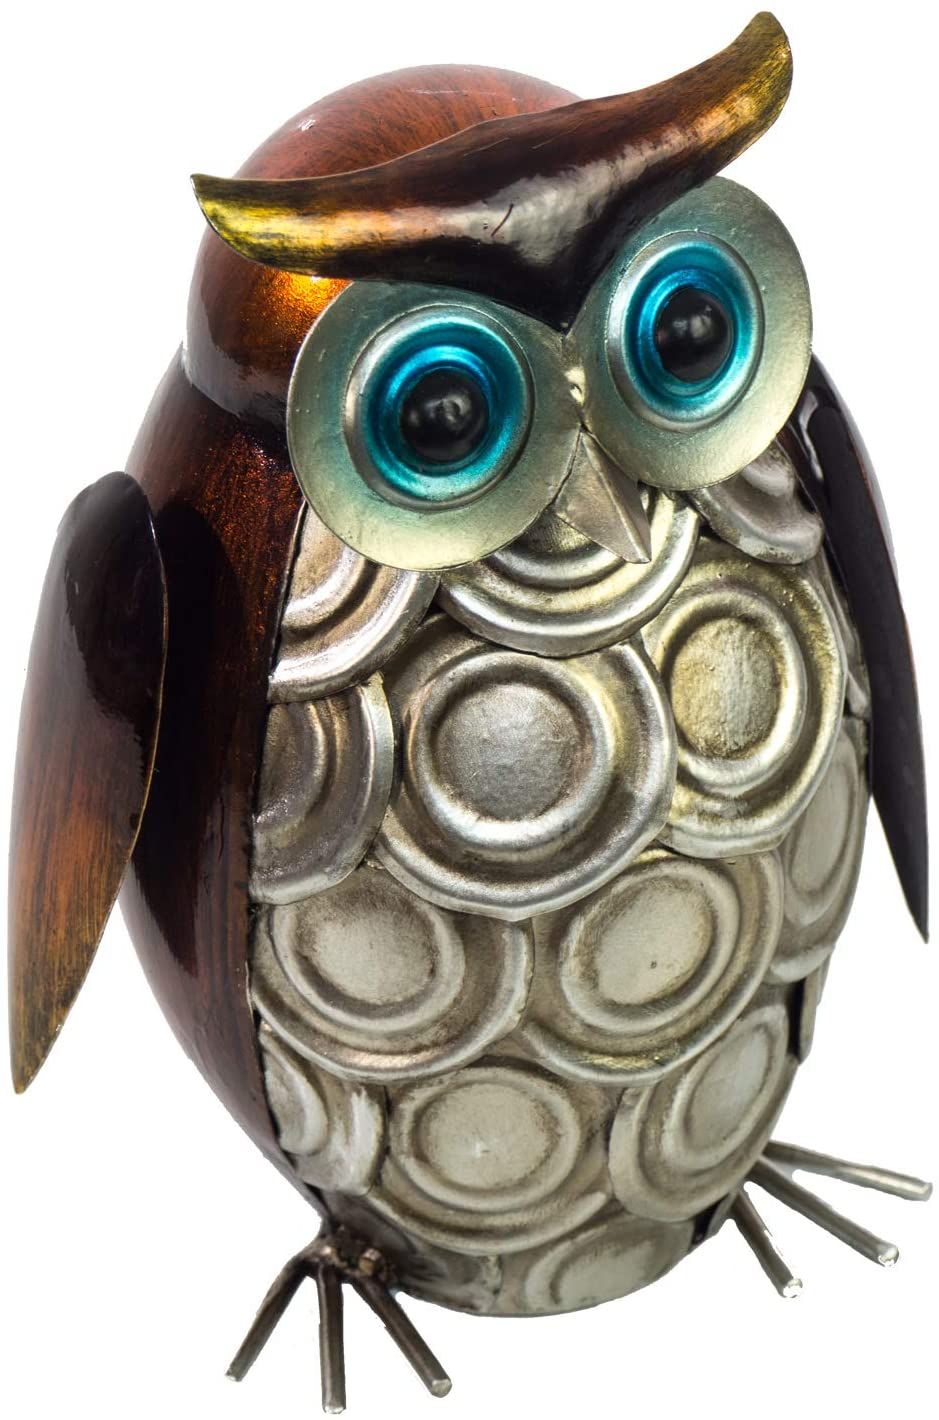 """The Creative Critters Owl Ornament 3D Metal Design - Hand-Painted - 7"""" High x 4"""" Round - Indoor or Outdoor Use - Popular Home Decor – Table Decoration in Contemporary Farmhouse Style"""